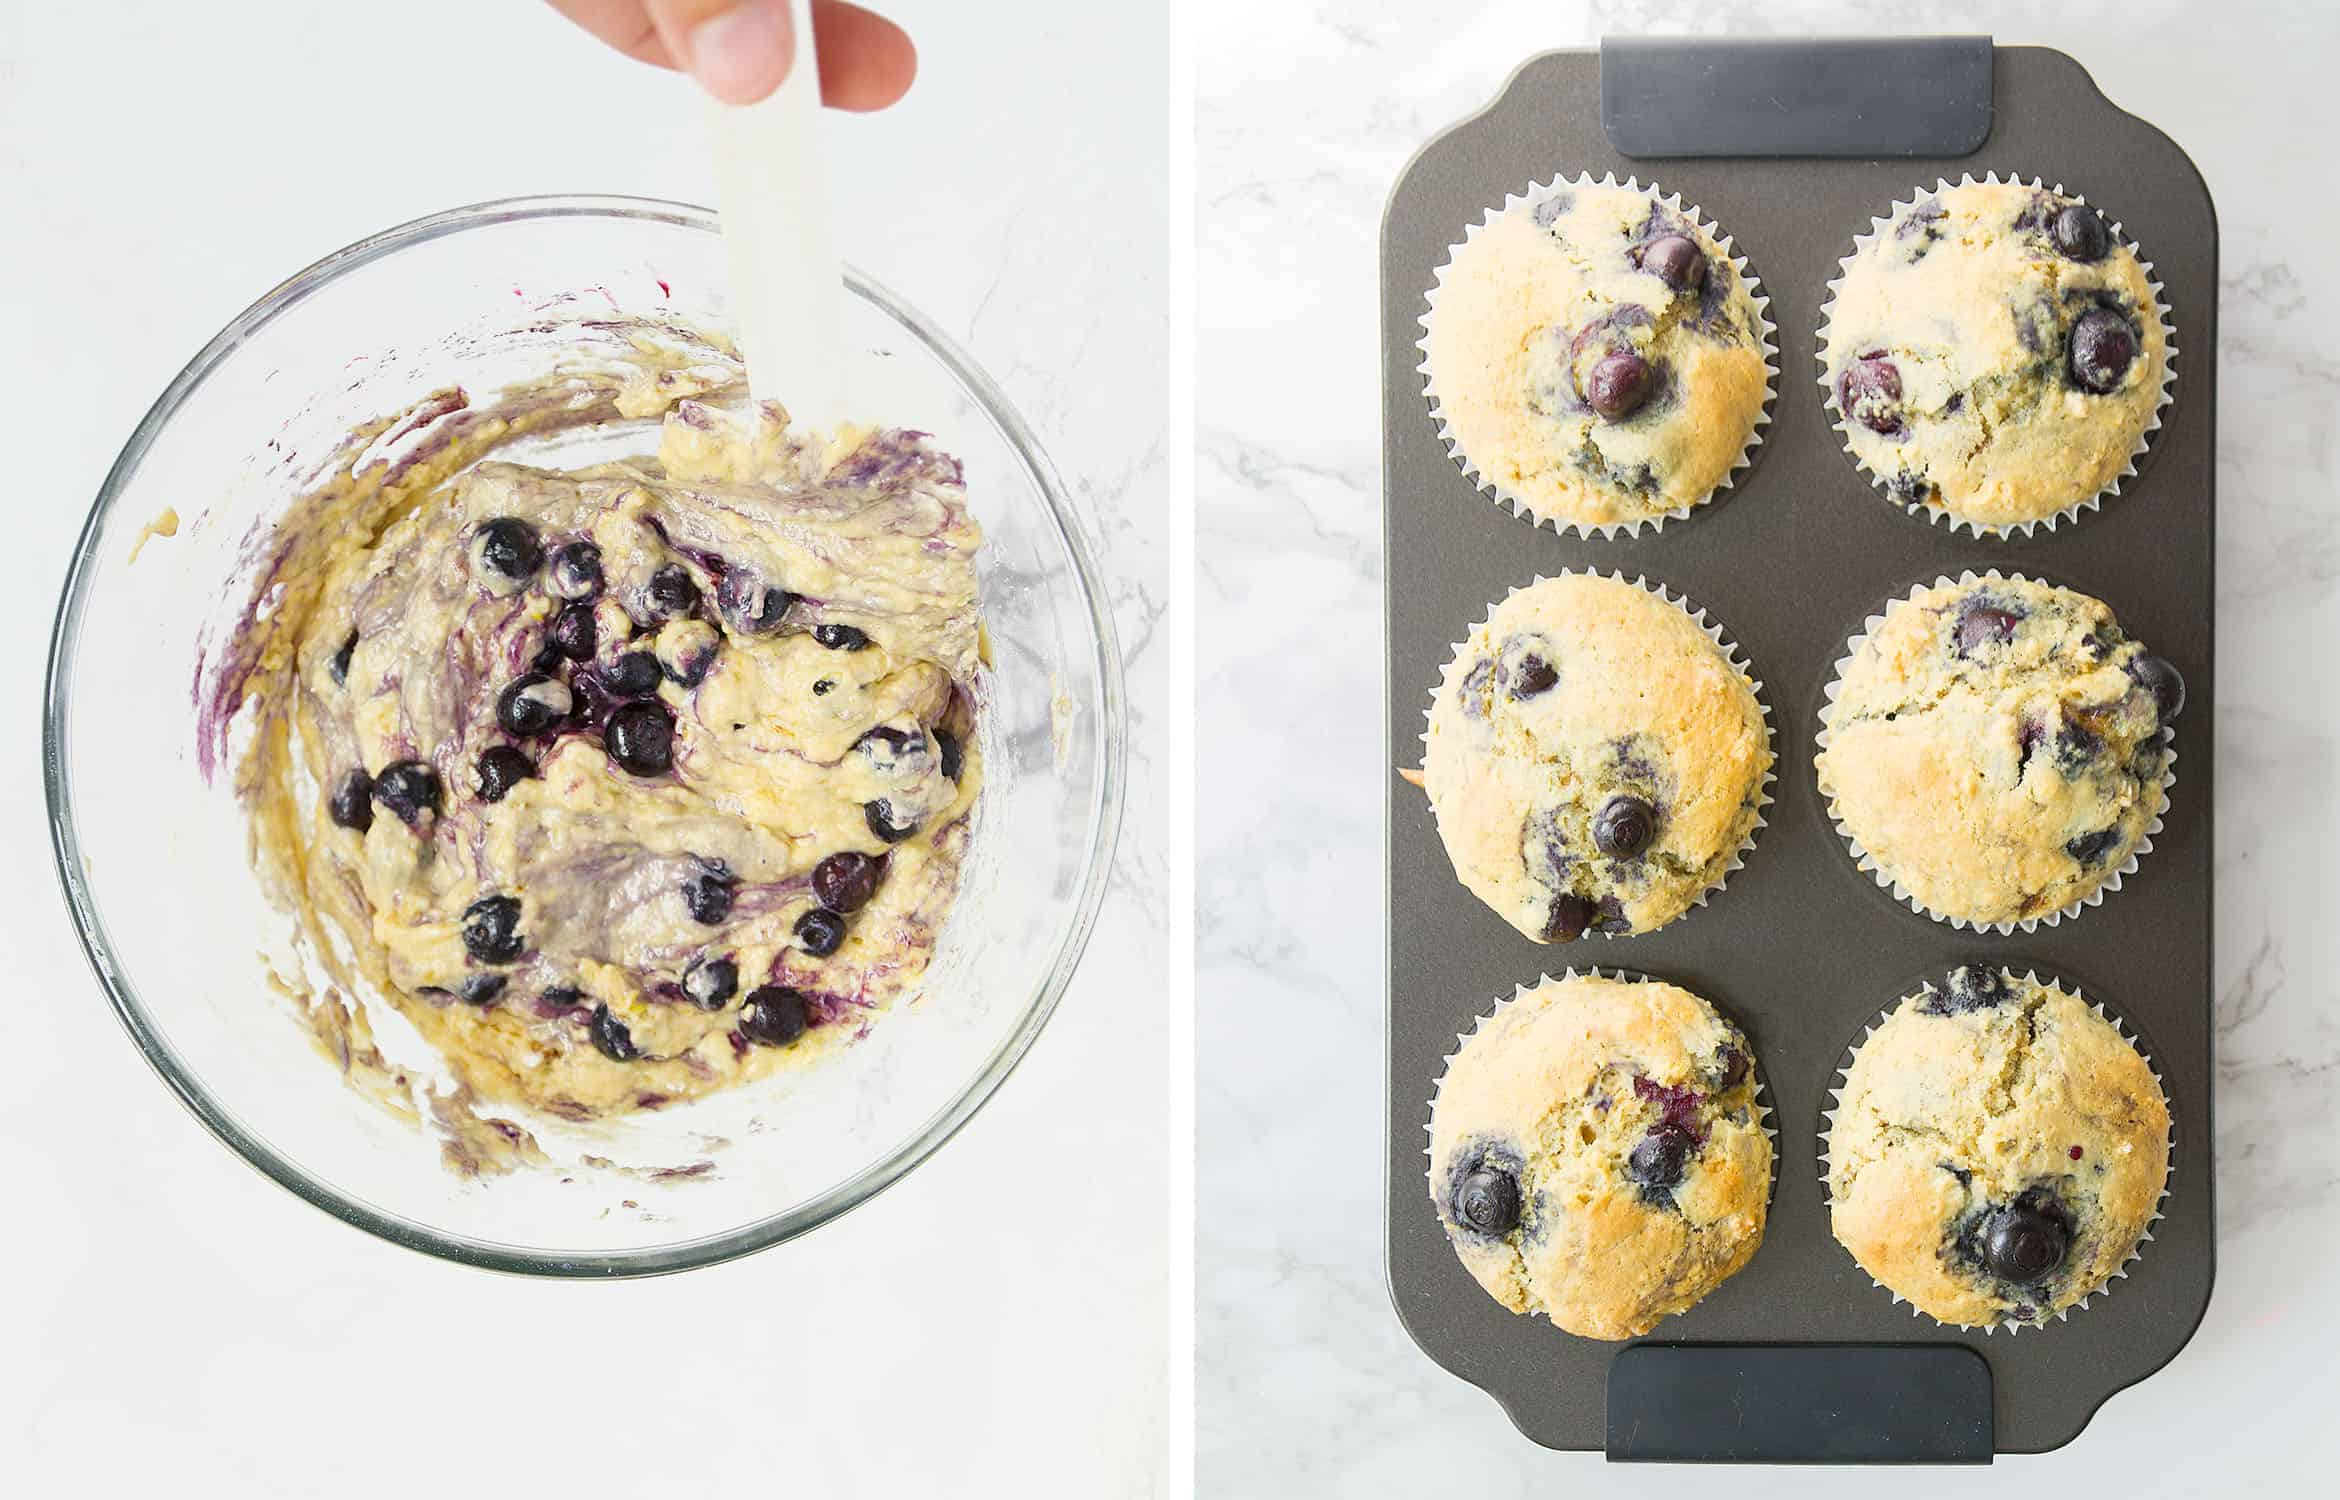 A spatula mixing the muffin batter in a glass bowl and then six muffins into a muffin tray.